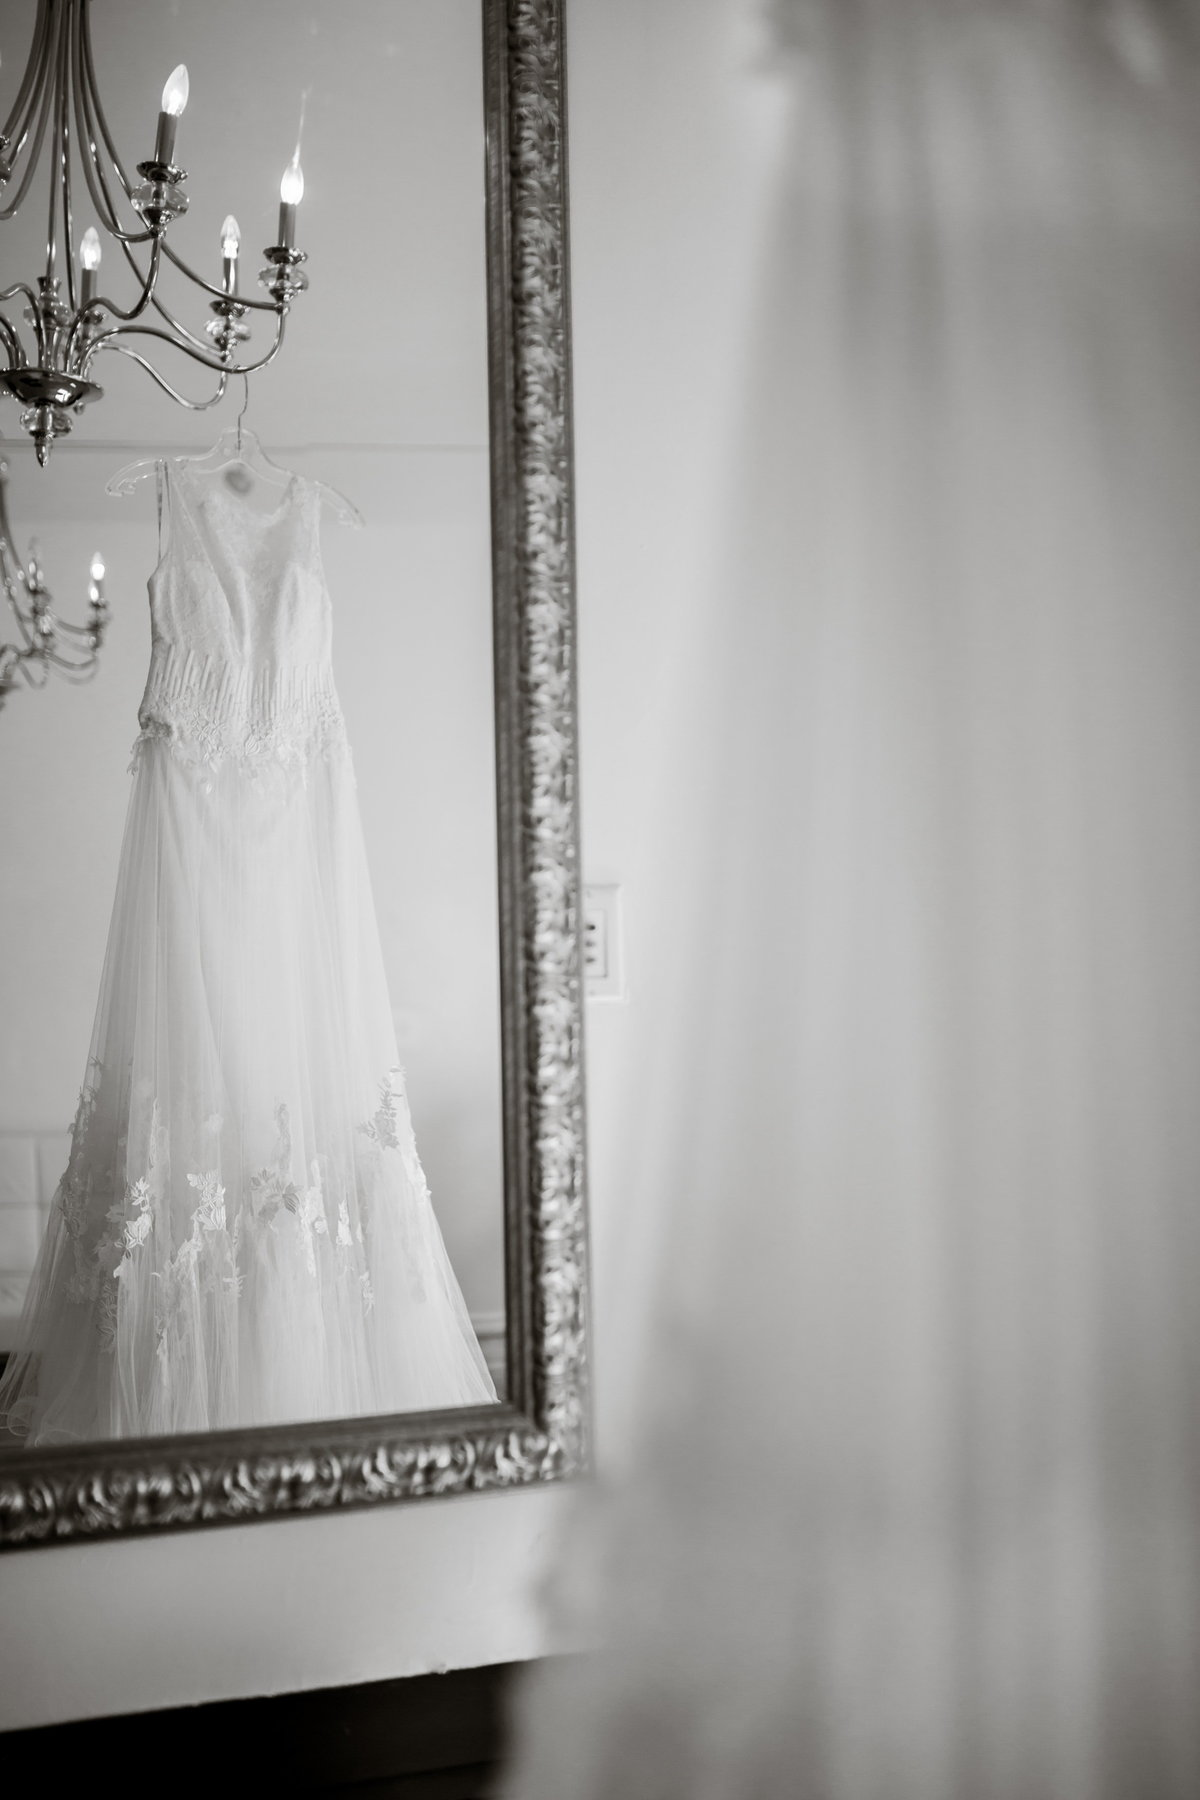 Black and white photo of wedding dress hanging from chandelier being reflected in a wall mirror